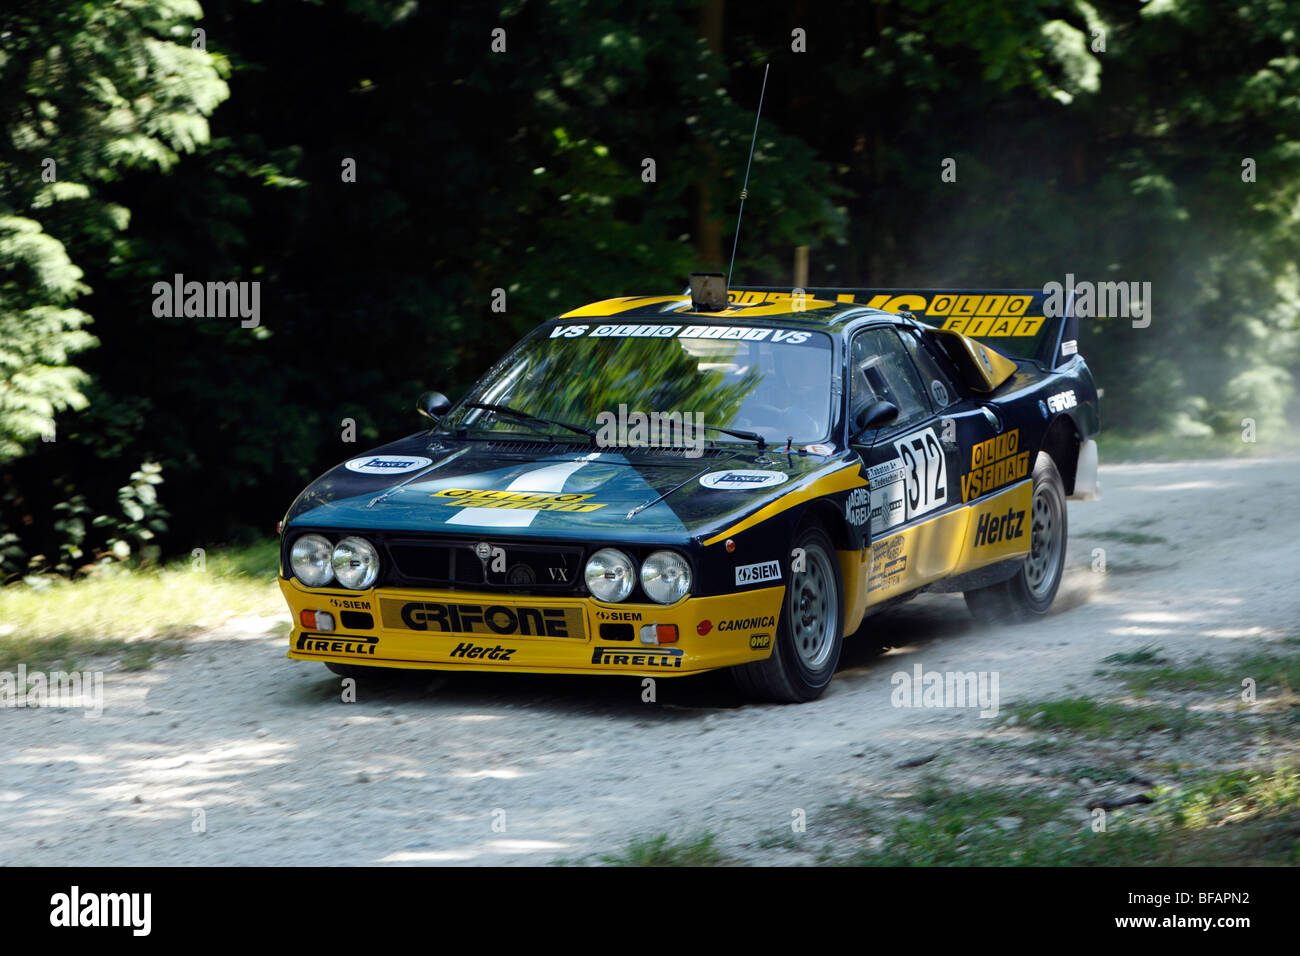 Lancia Rallye 037 EVO 2. Driven By Robert Whitehouse on the rally stage at Goodwood Festival Of Speed 2009 - Stock Image